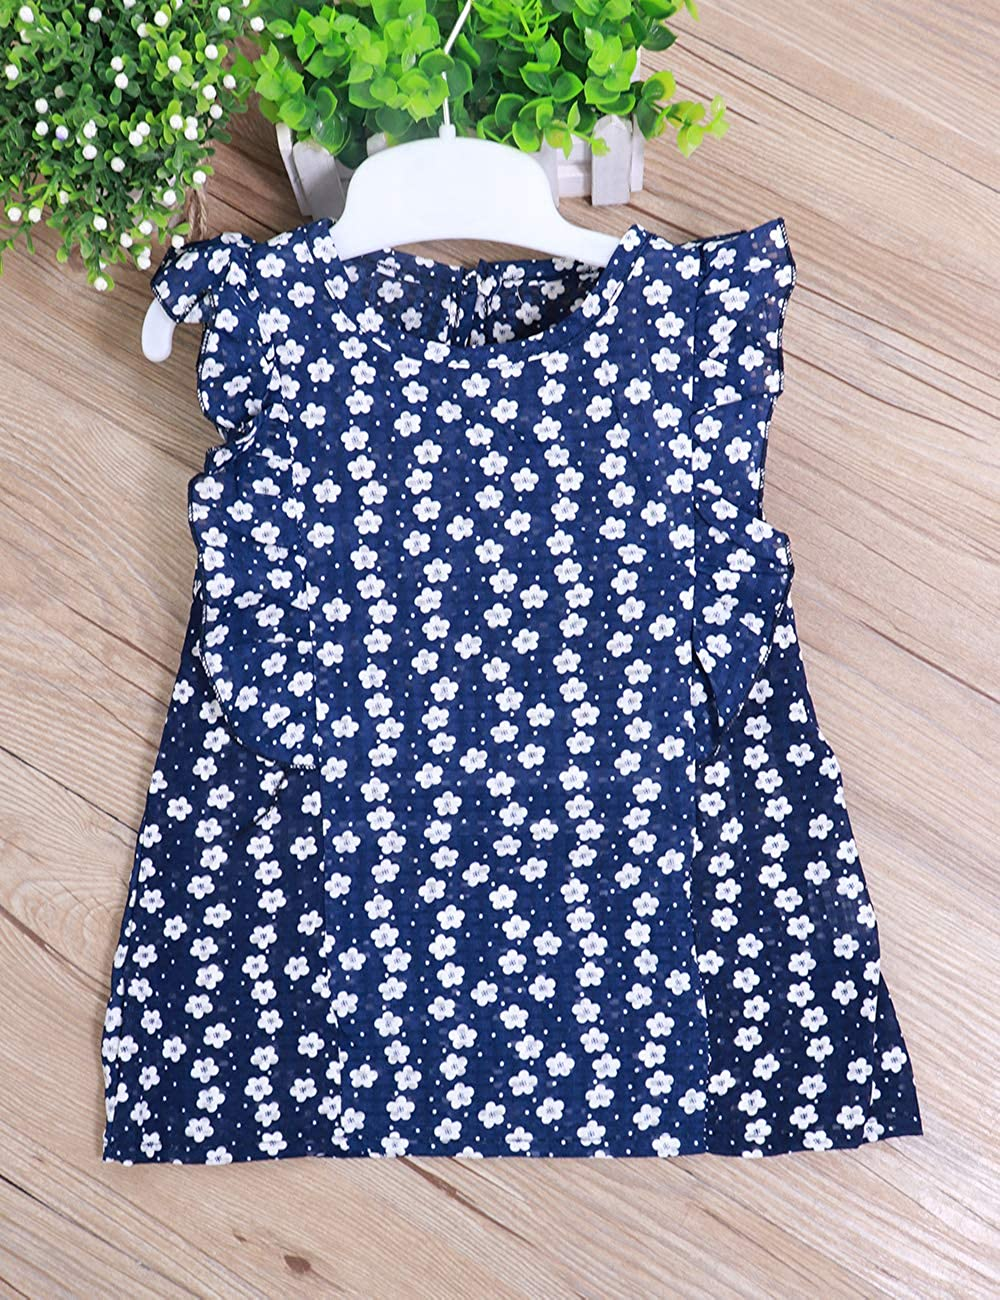 Little Toddler Girl Outfits Summer Floral Ruffle T-Shirt Vest Tops Shorts Pants Baby Kids Clothes Sets